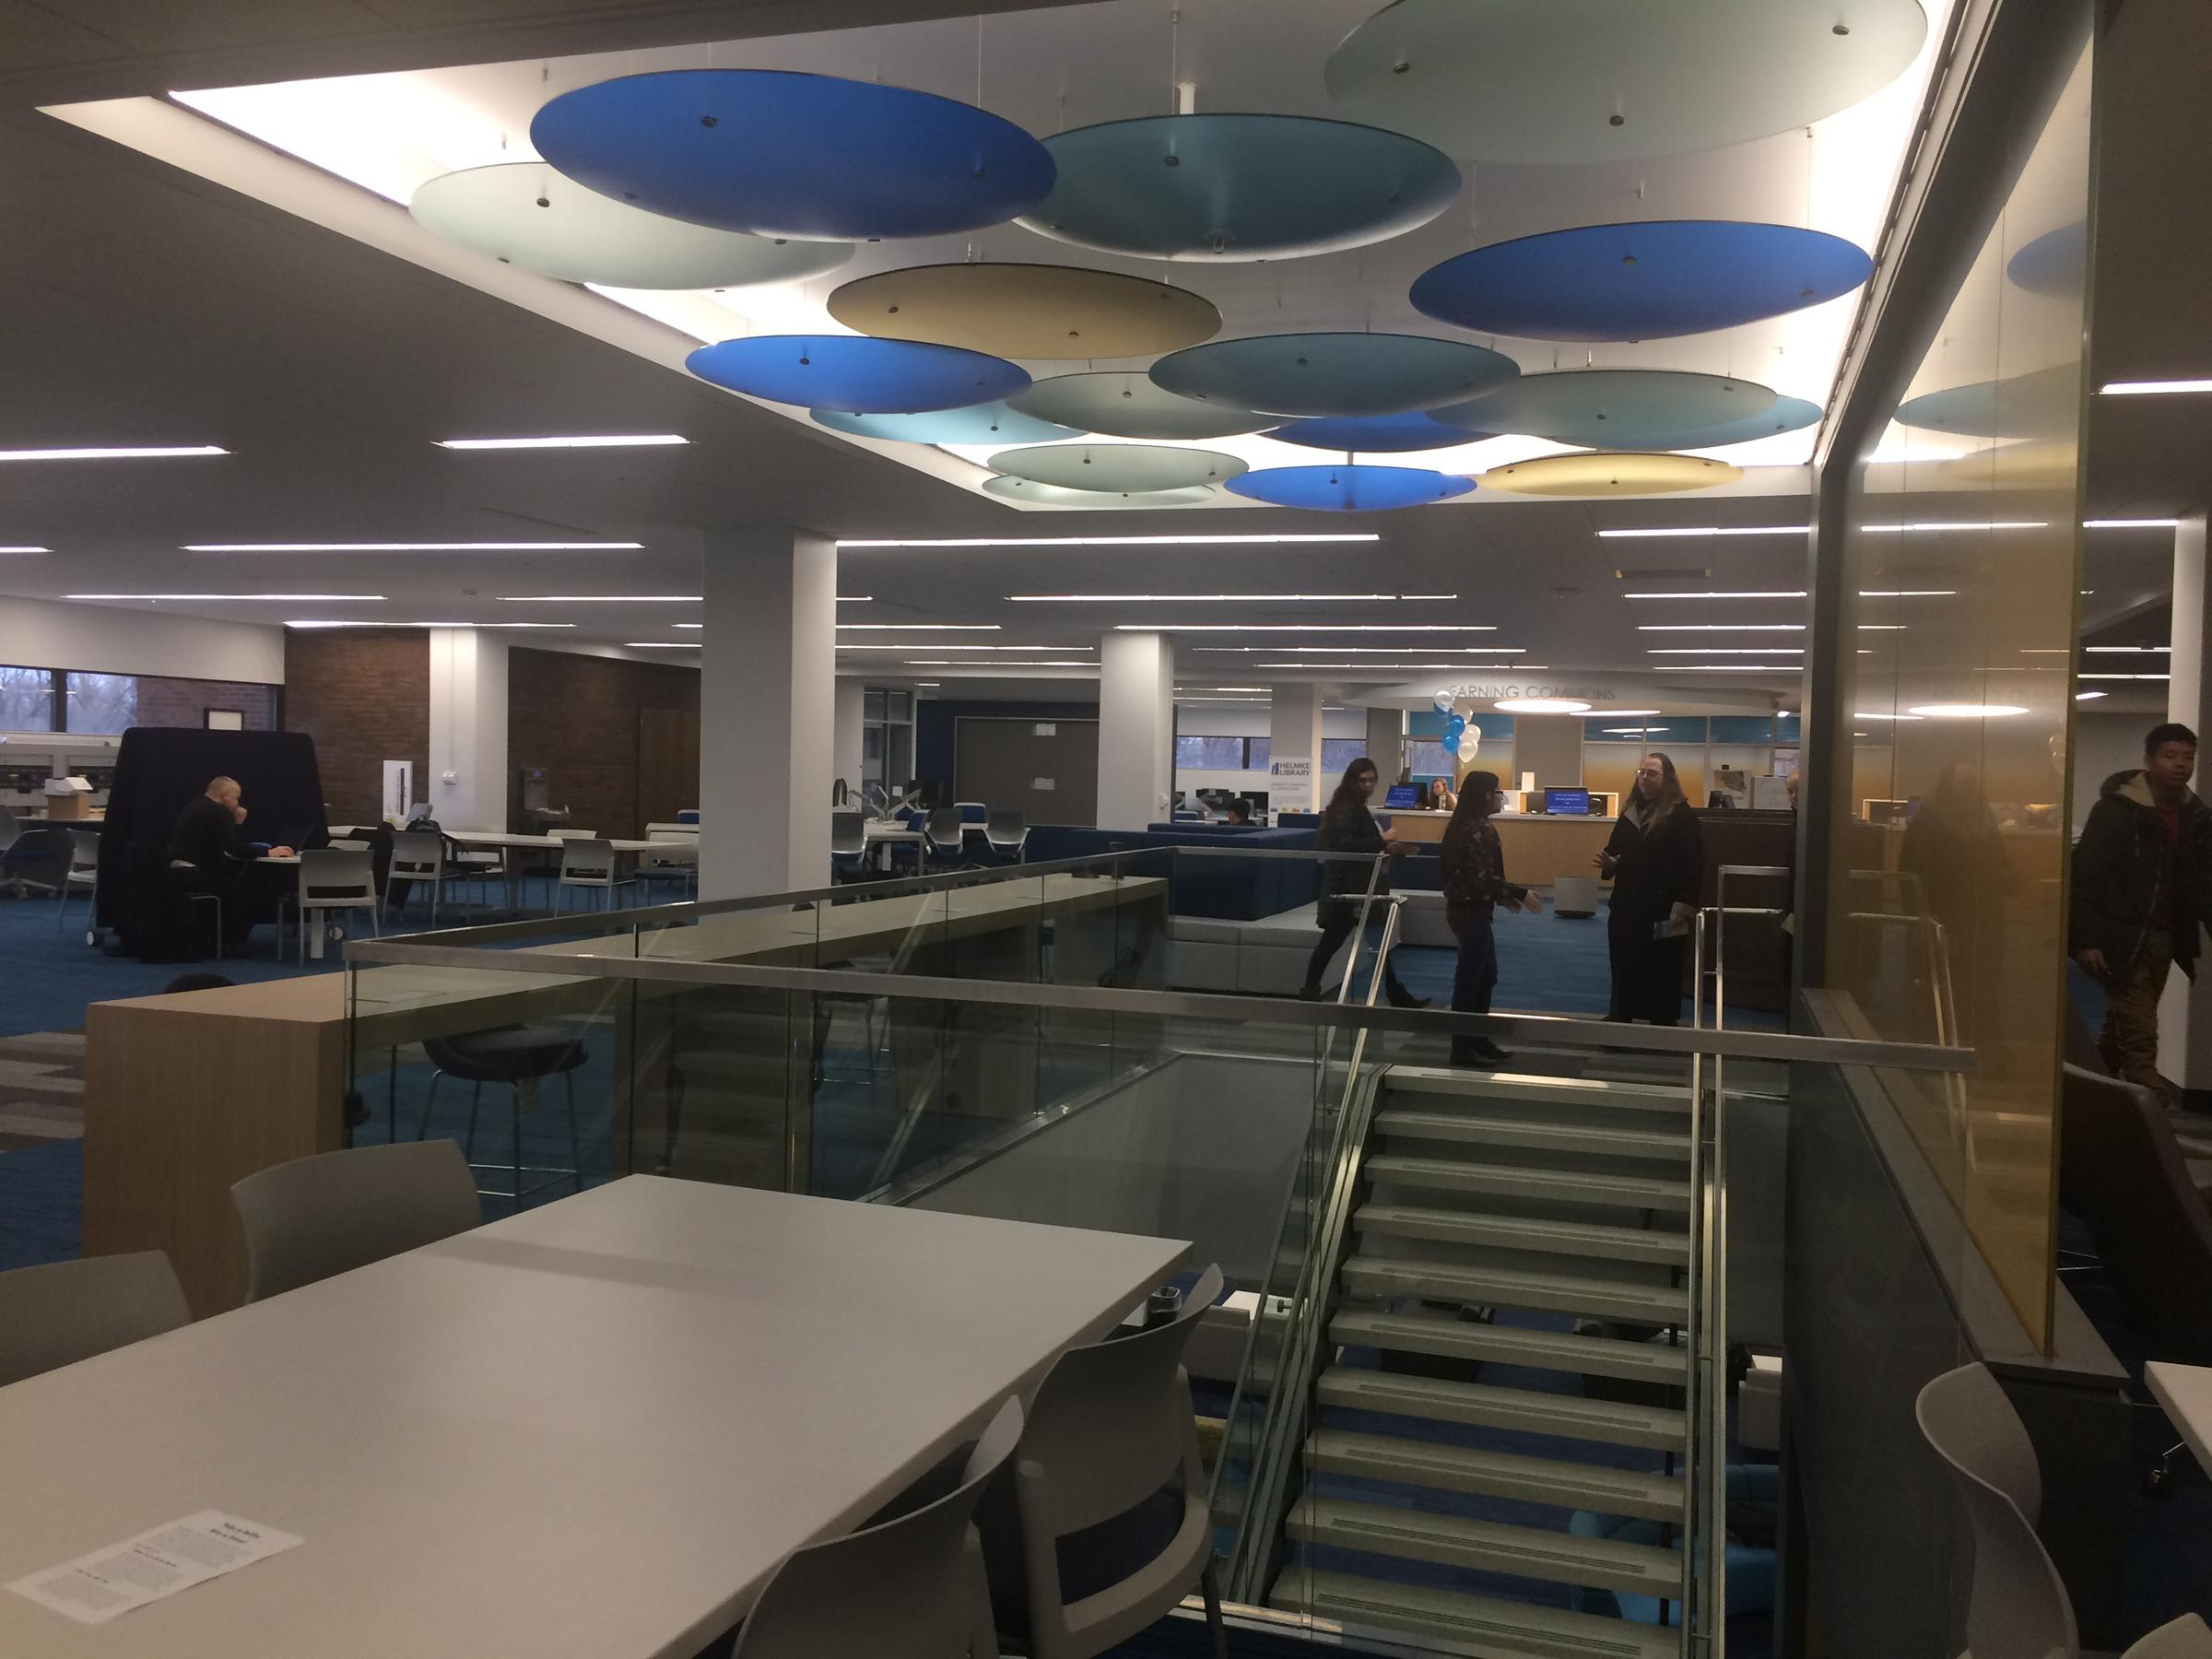 The Second Floor Also Includes A Newly Built Centrally Located Staircase